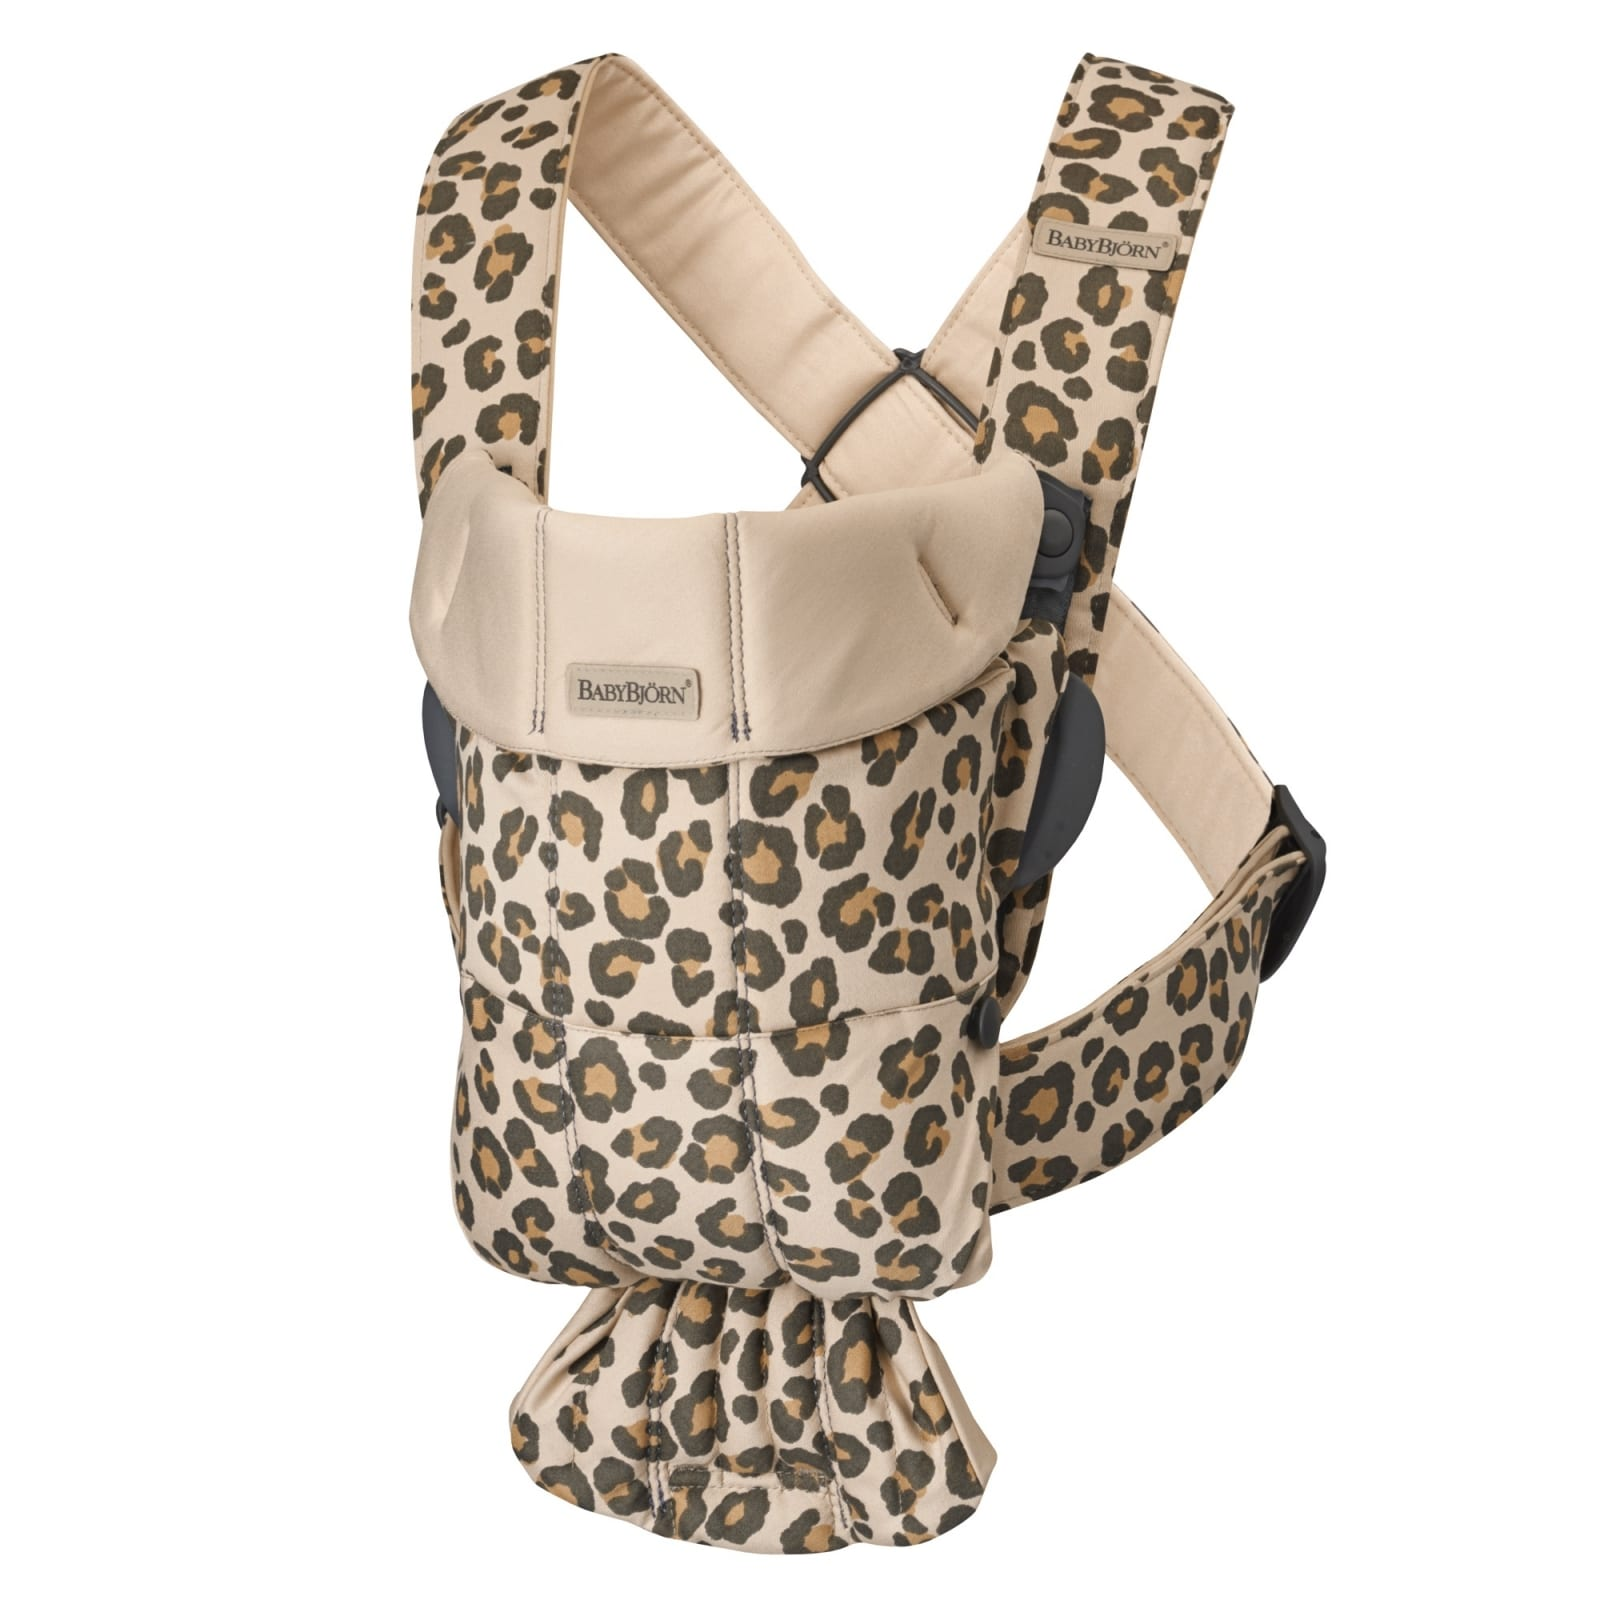 BABYBJÖRN Baby Carrier Mini, Cotton Beige/Leopard product image